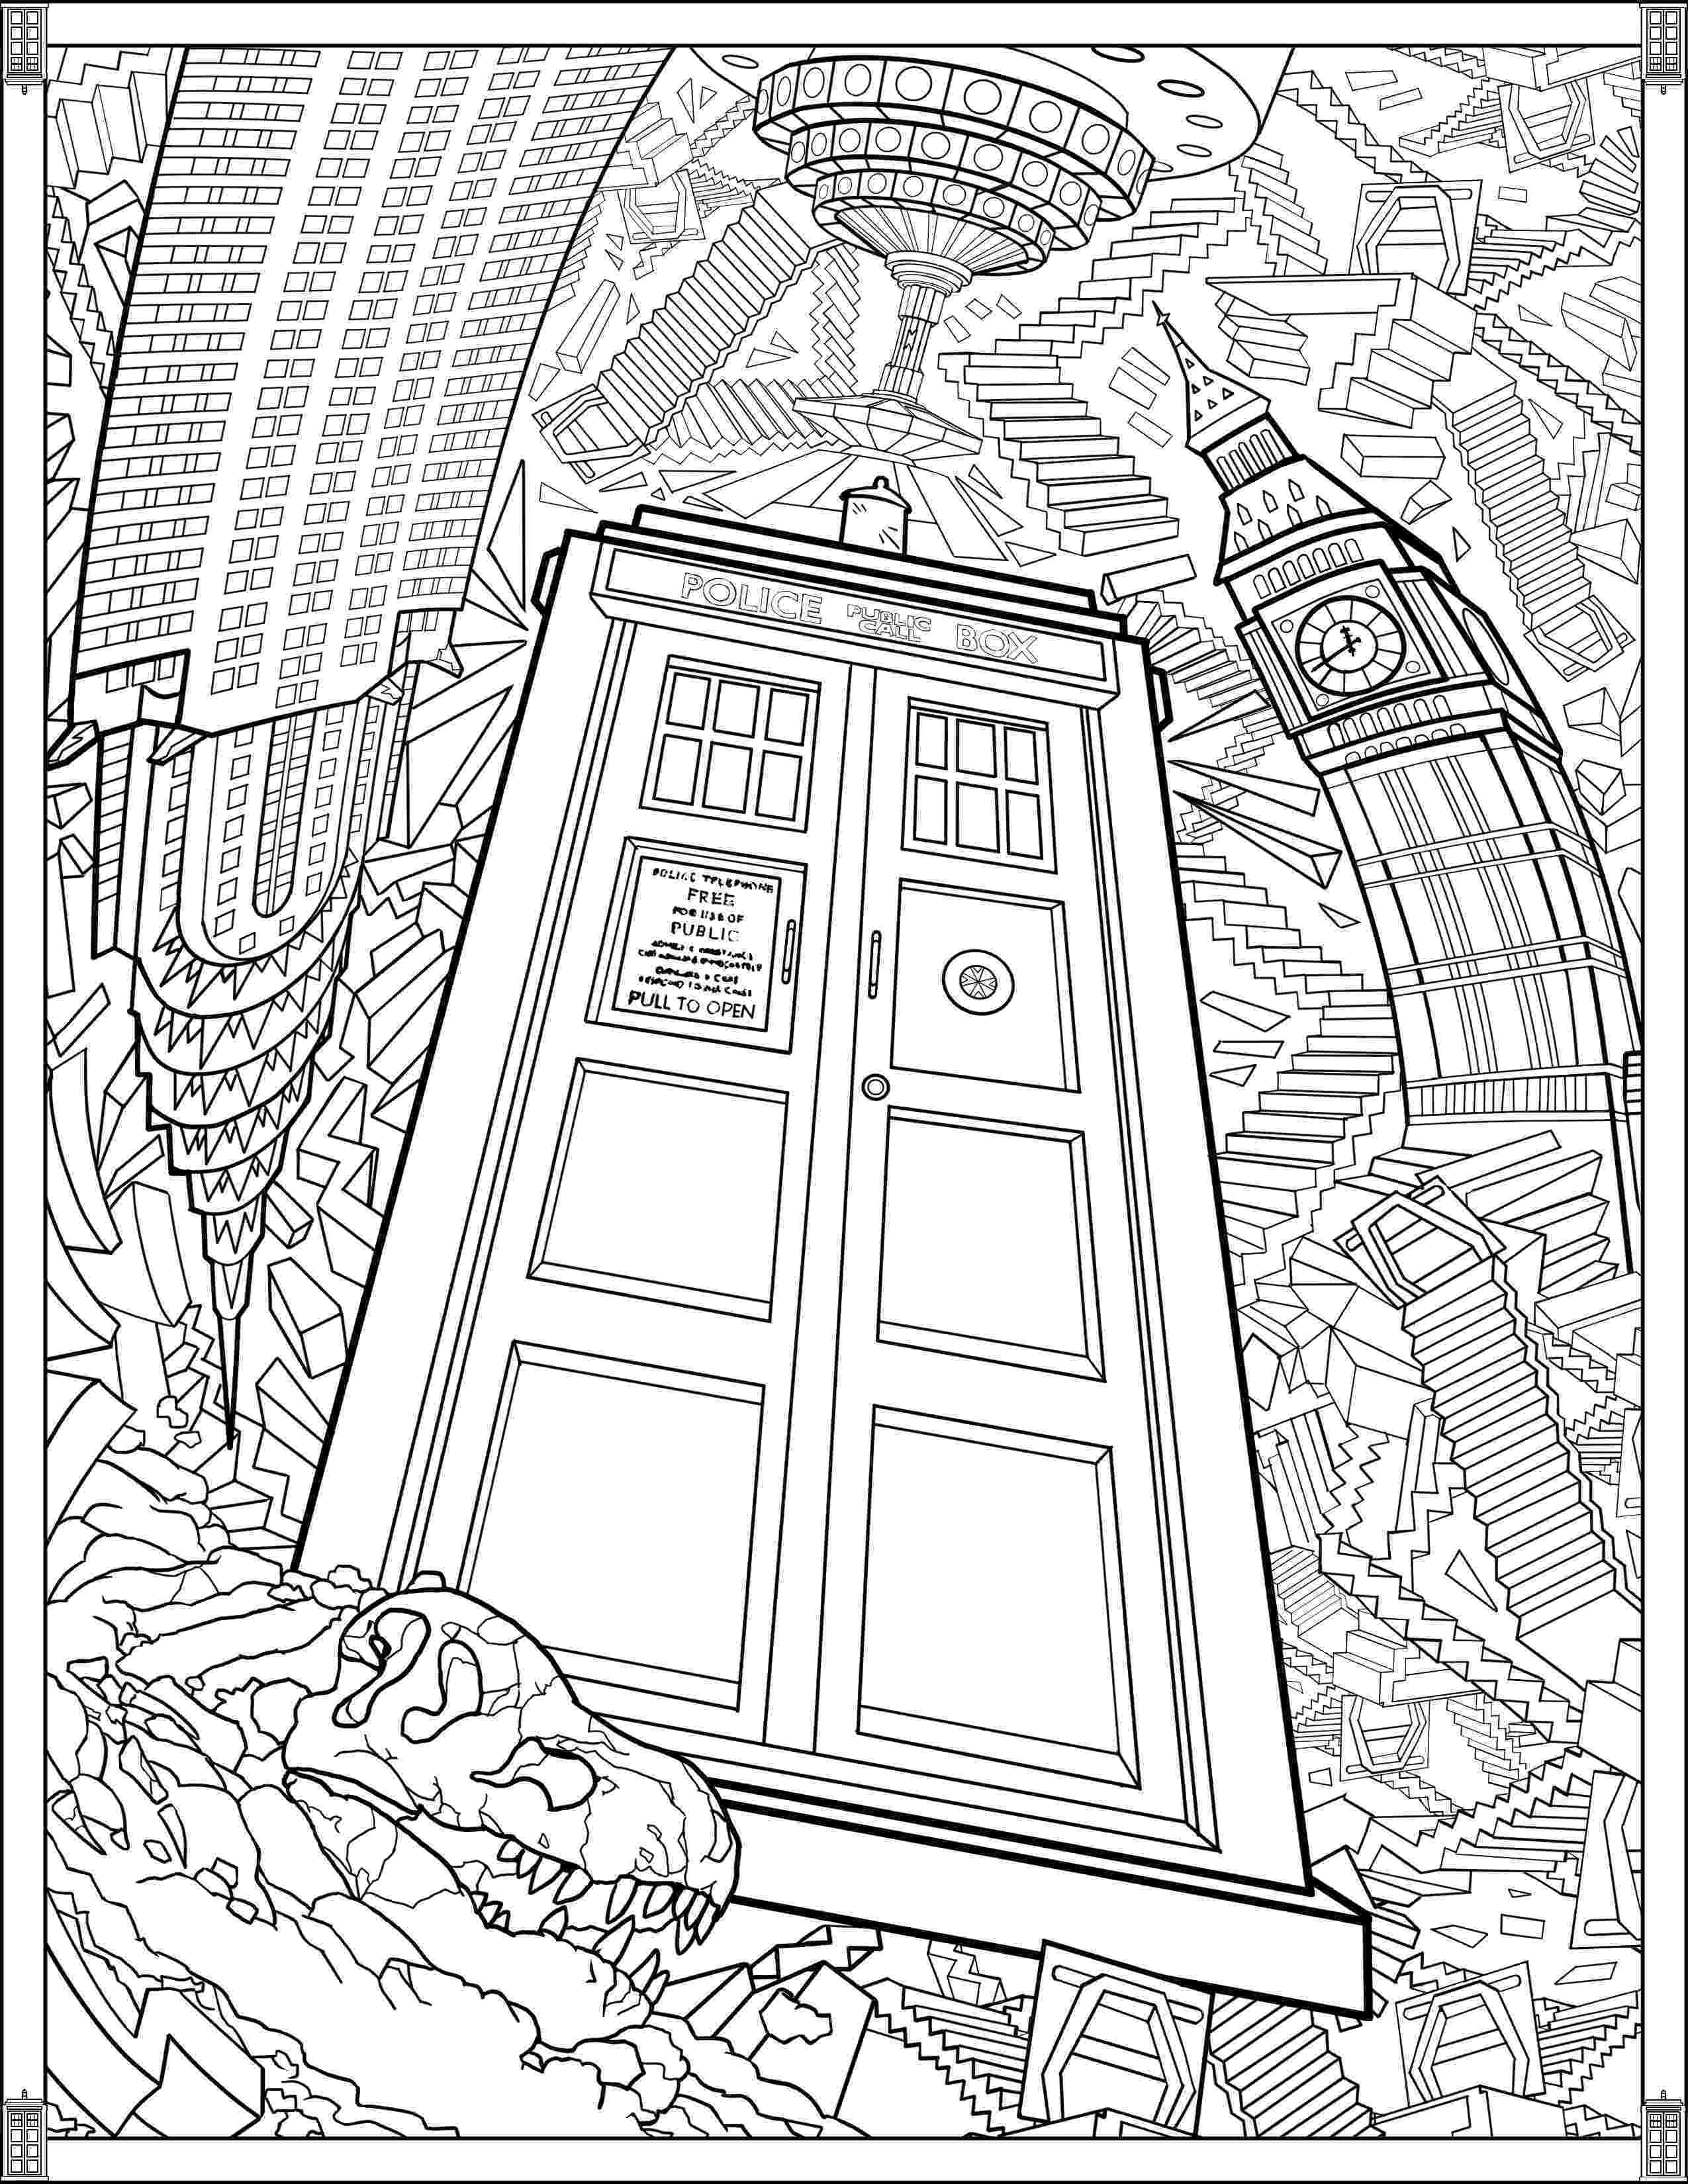 tardis colouring pages tardis outline by callmepin on deviantart colouring tardis pages